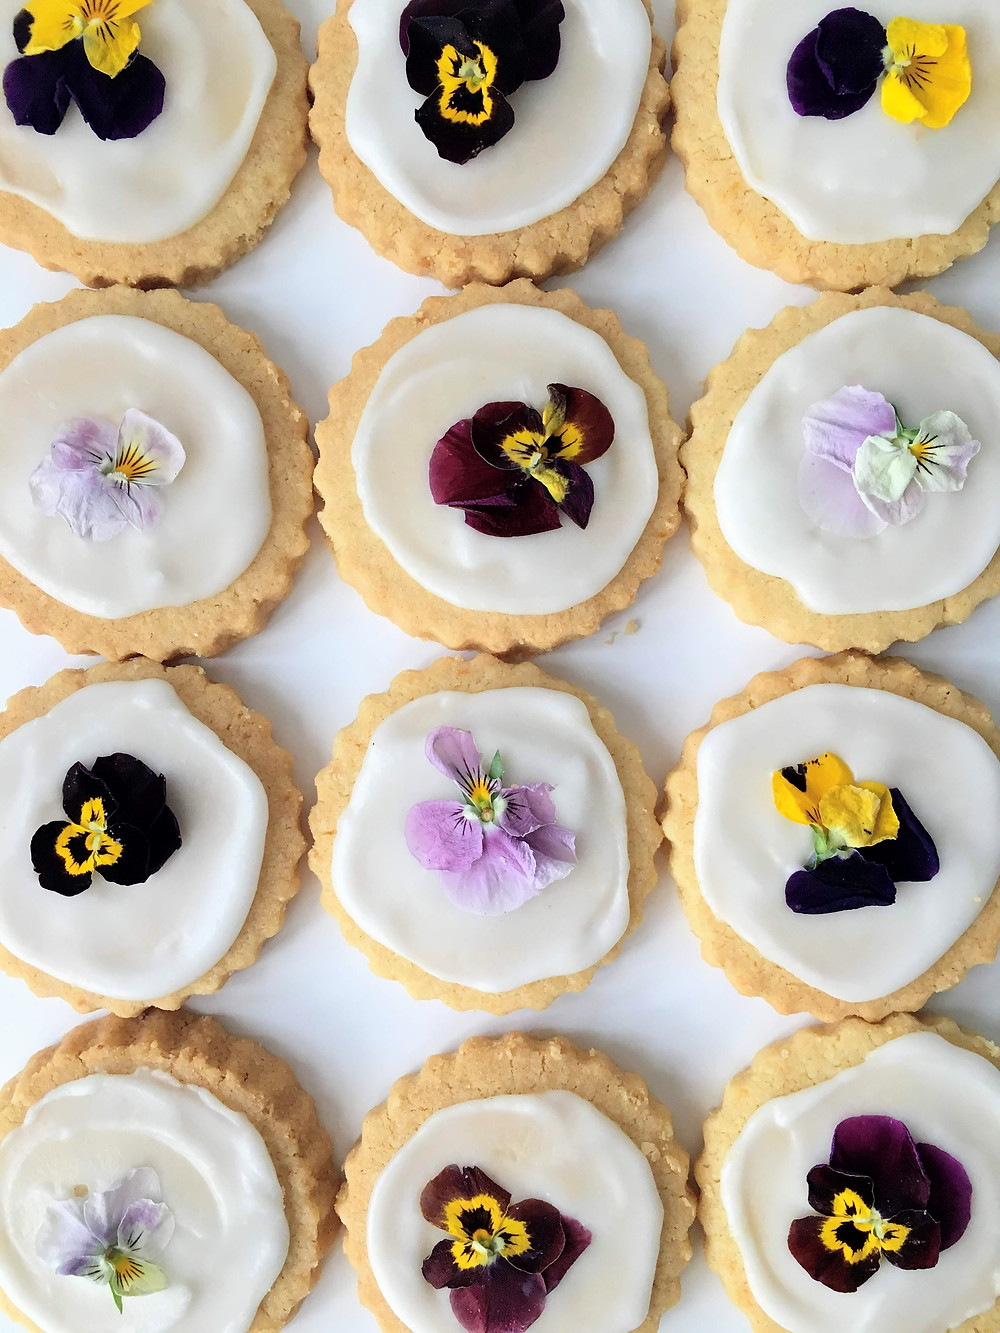 Buttery crumbly shortbread with a lemon icing and edible violas